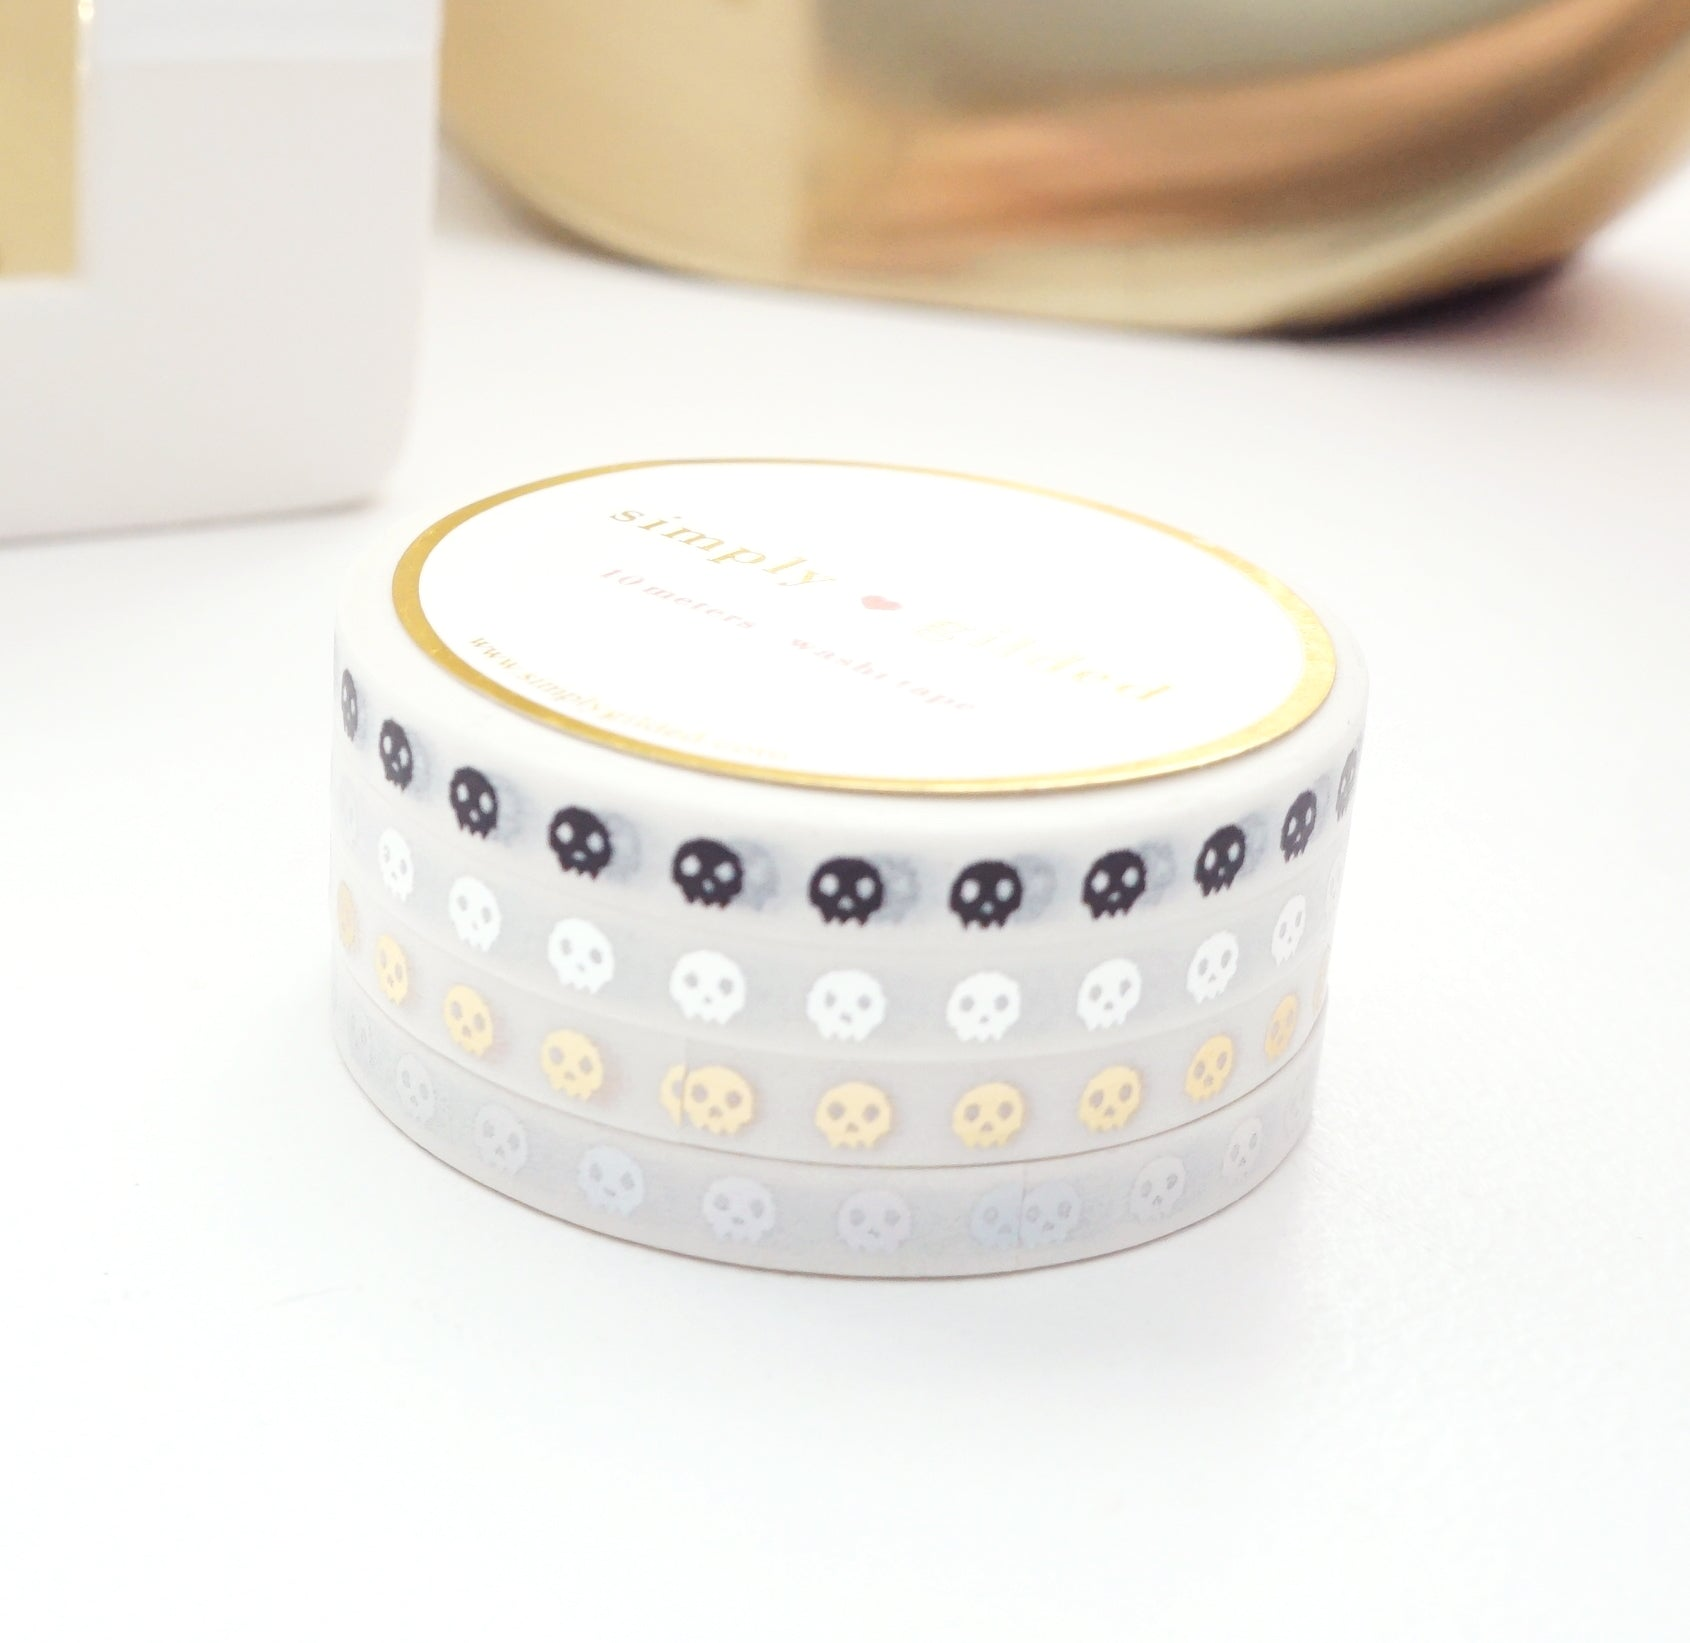 MINI 5mm WASHI TAPE set of 4 - WHITE SKULLS + black/silver/light gold/holographic silver foil (September Release)